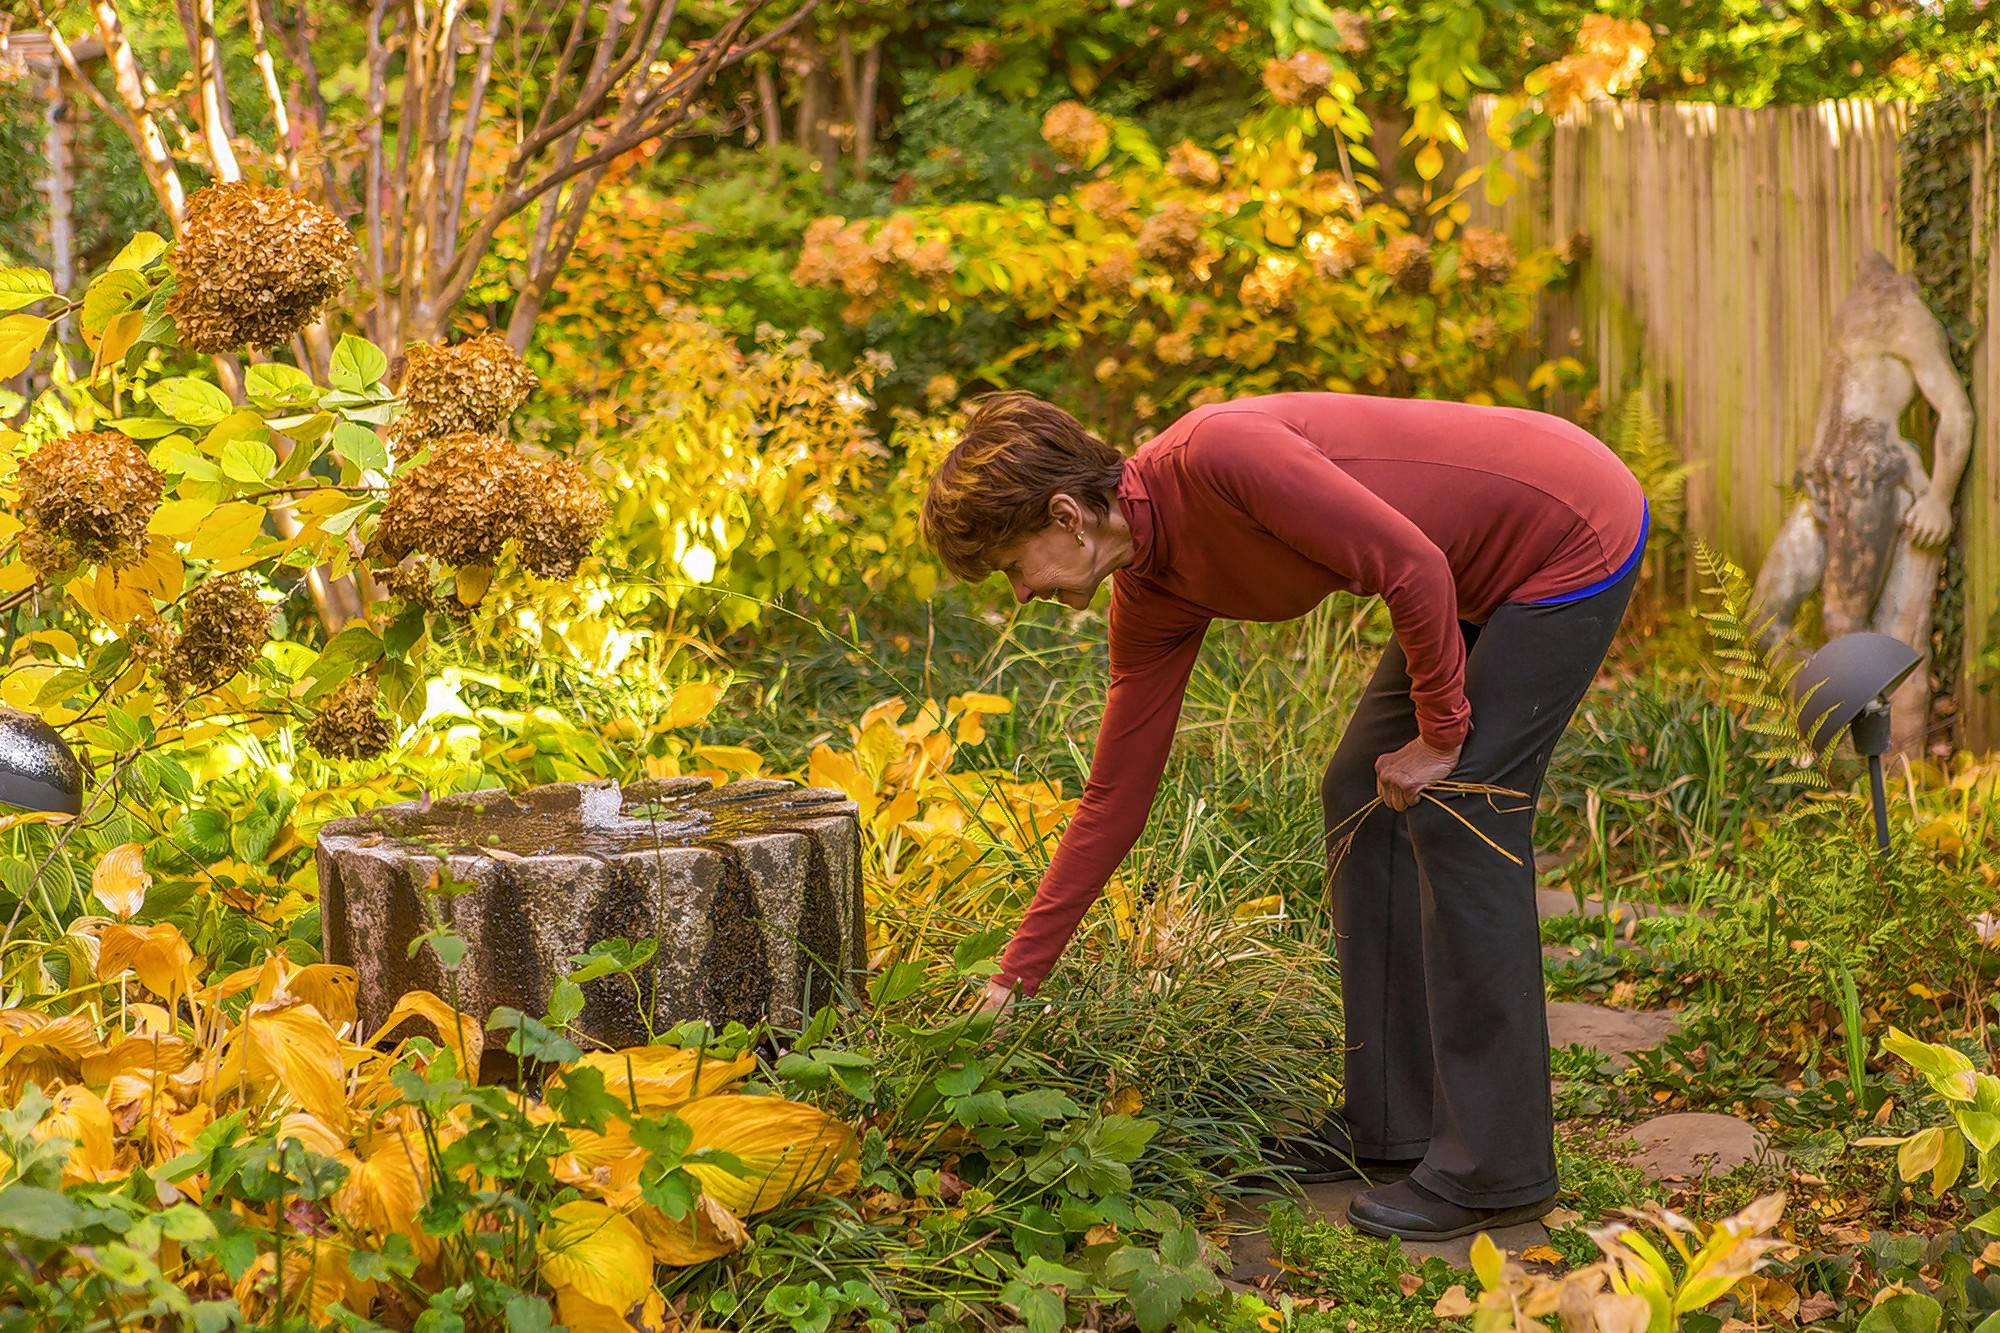 With a millstone-like fountain as its focal point, Barbara Downs' garden in the Georgetown neighborhood of Washington, D.C., is full of native and other plants, and plenty of fall color.